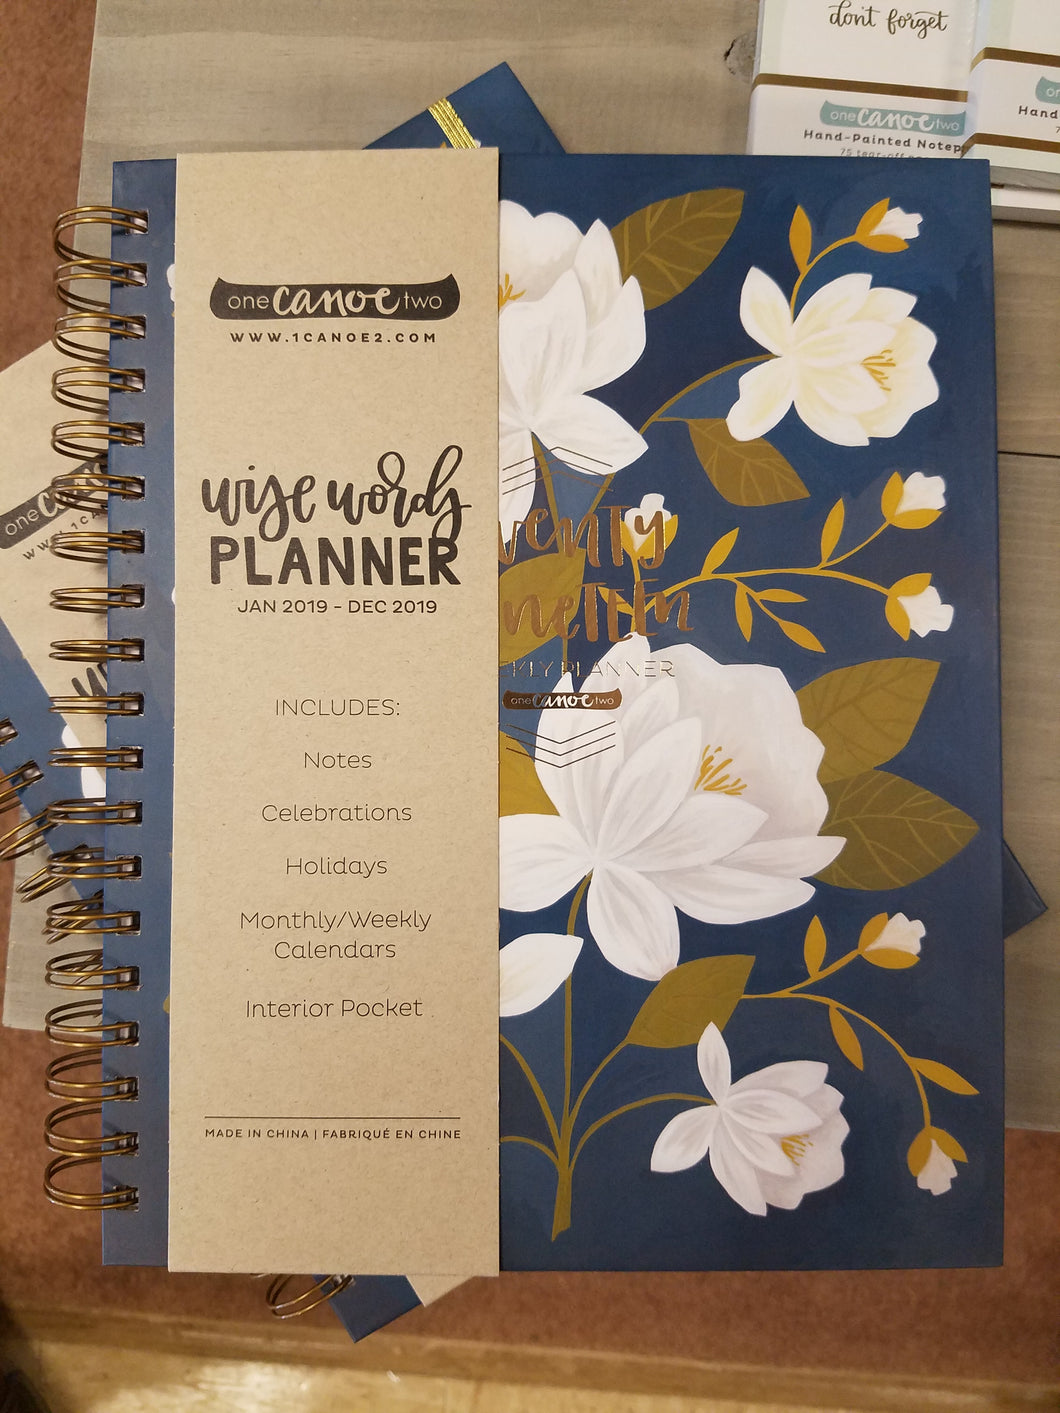 One Canoe Two Planner